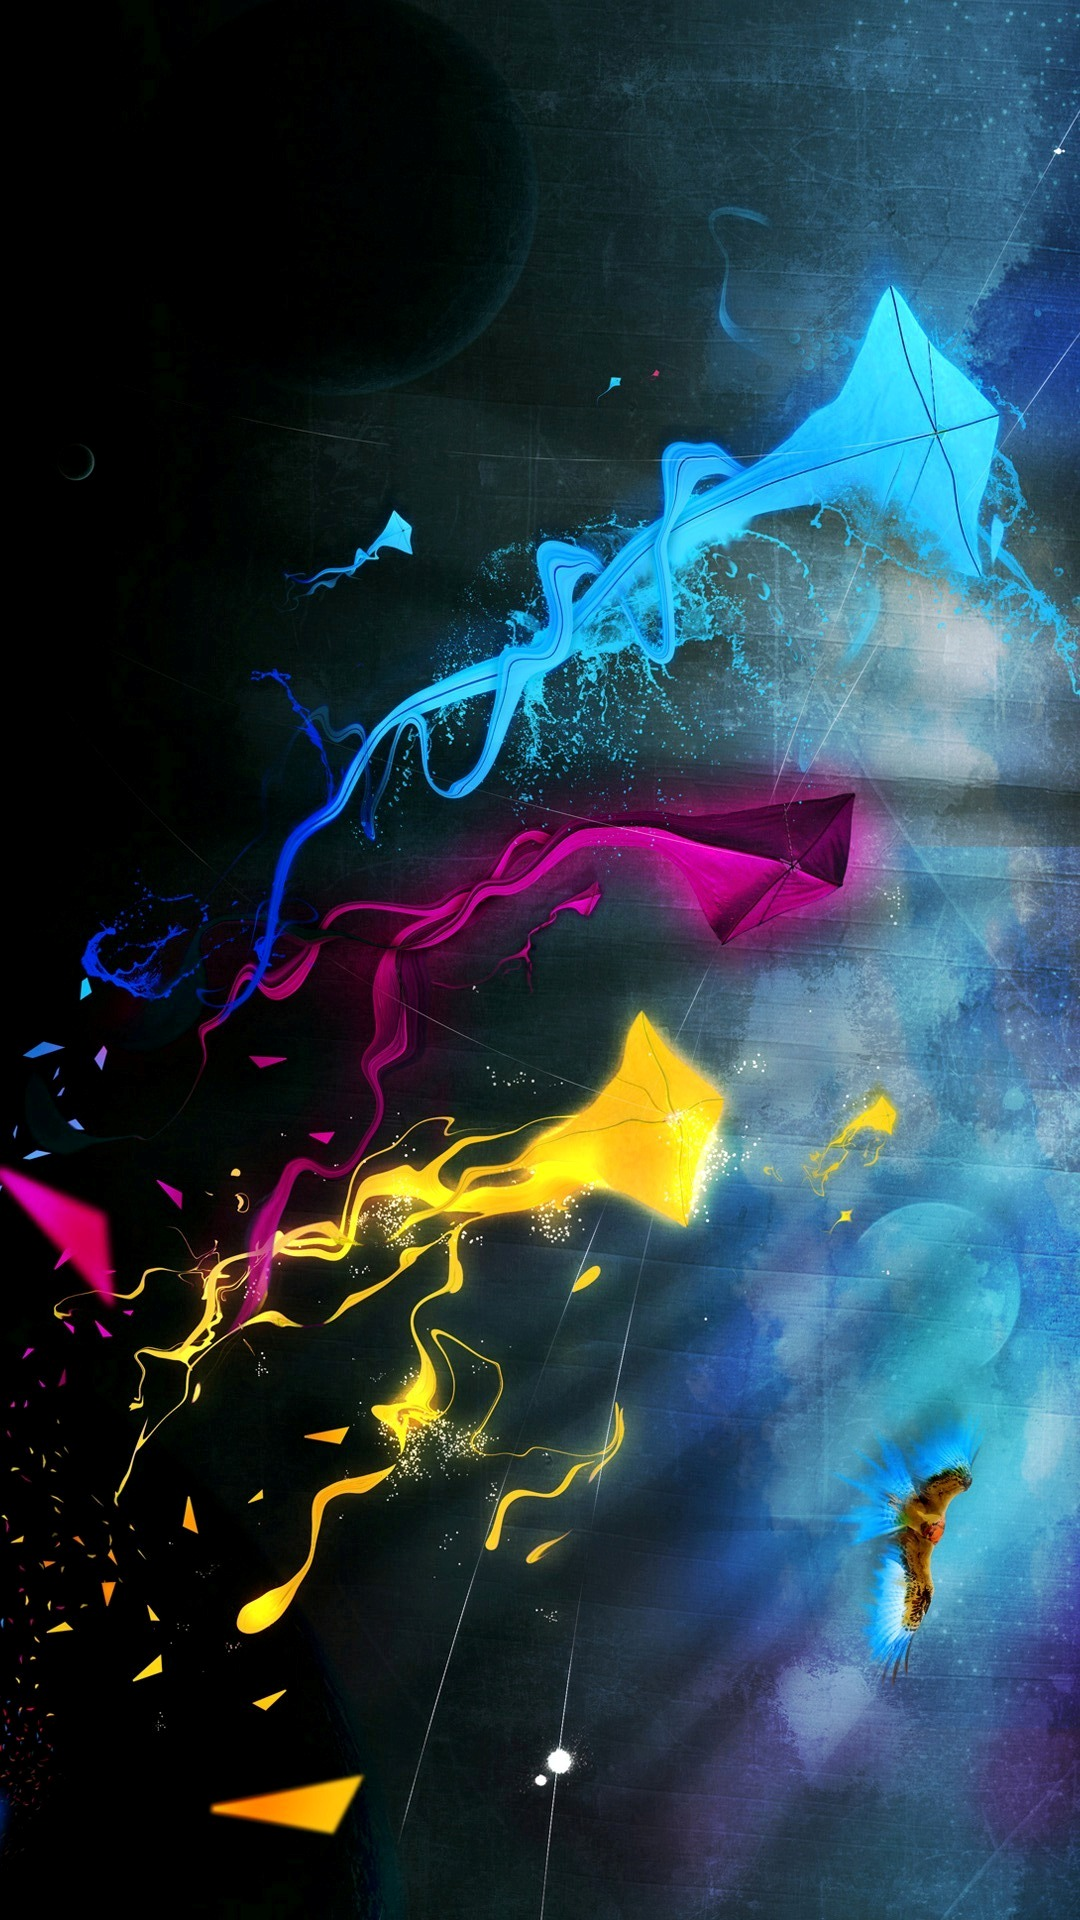 colorful kites windows phone hd for mobile phone wallpapers 1080x1920 1080x1920